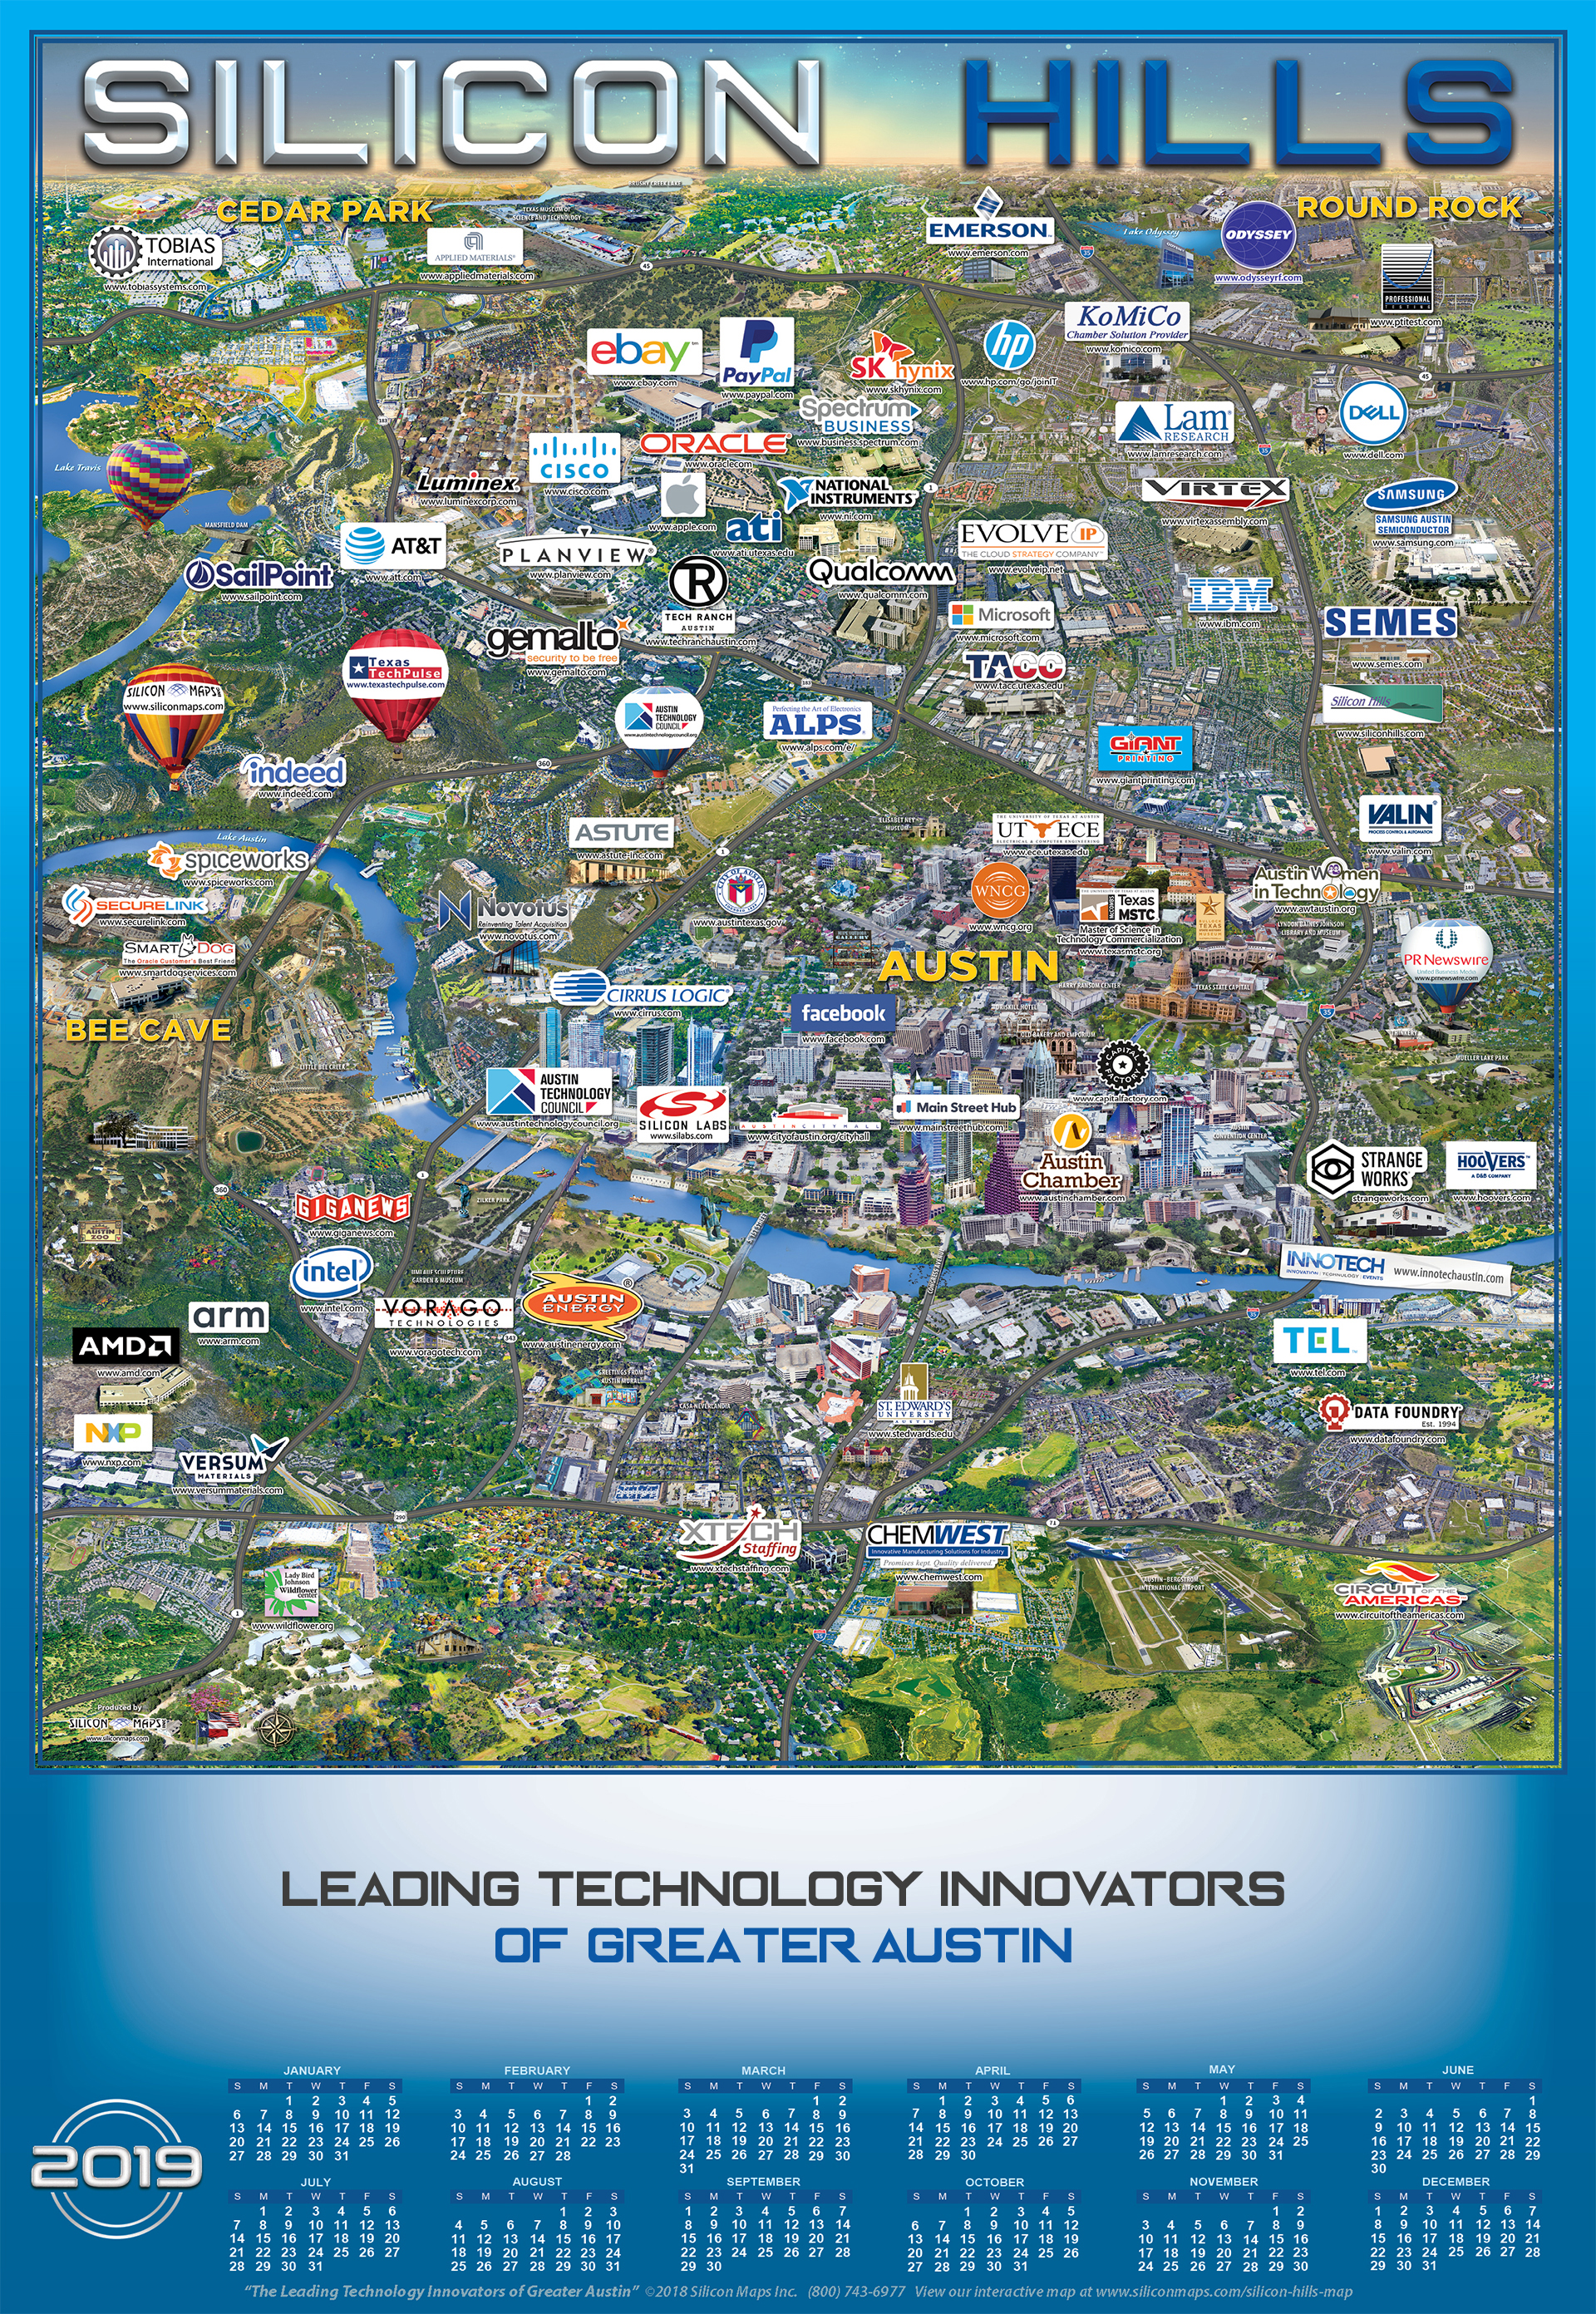 Silicon Hills 2019 on san diego map, silicon hills map, napa county map, palo alto map, los angeles map, san jose map, san francisco map, bay area map, silicon beach map, east valley zip code map, san ramon valley map, santa barbara map, valley of mexico map, east bay map, silicon forest map, alameda county map, sacramento map, santa clara map, mountain view map, blossom valley map,